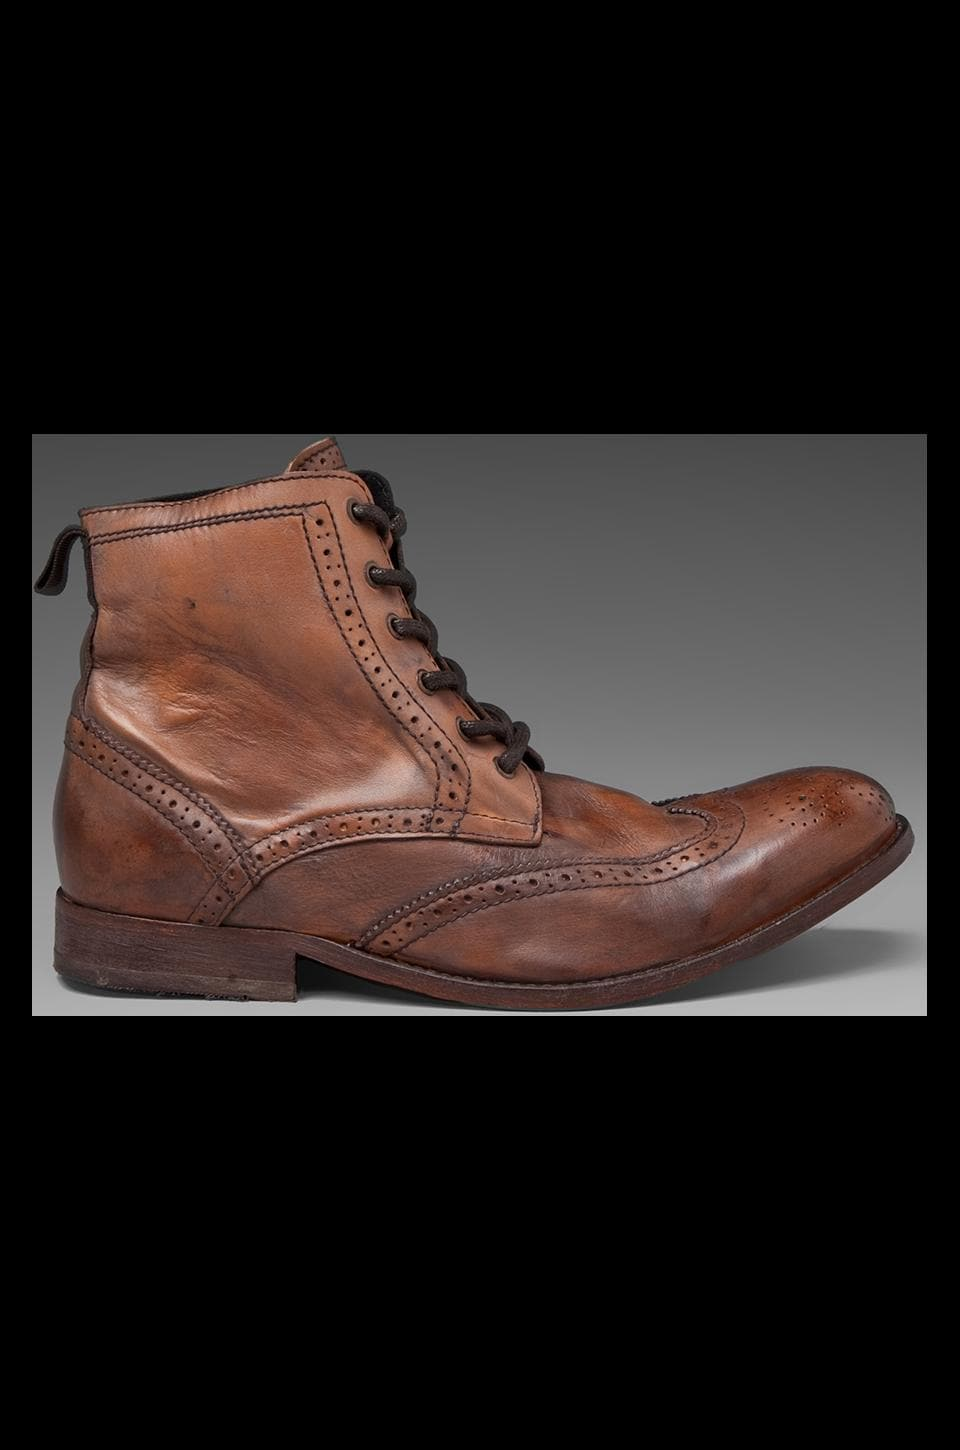 H by Hudson Angus Boot in Tan